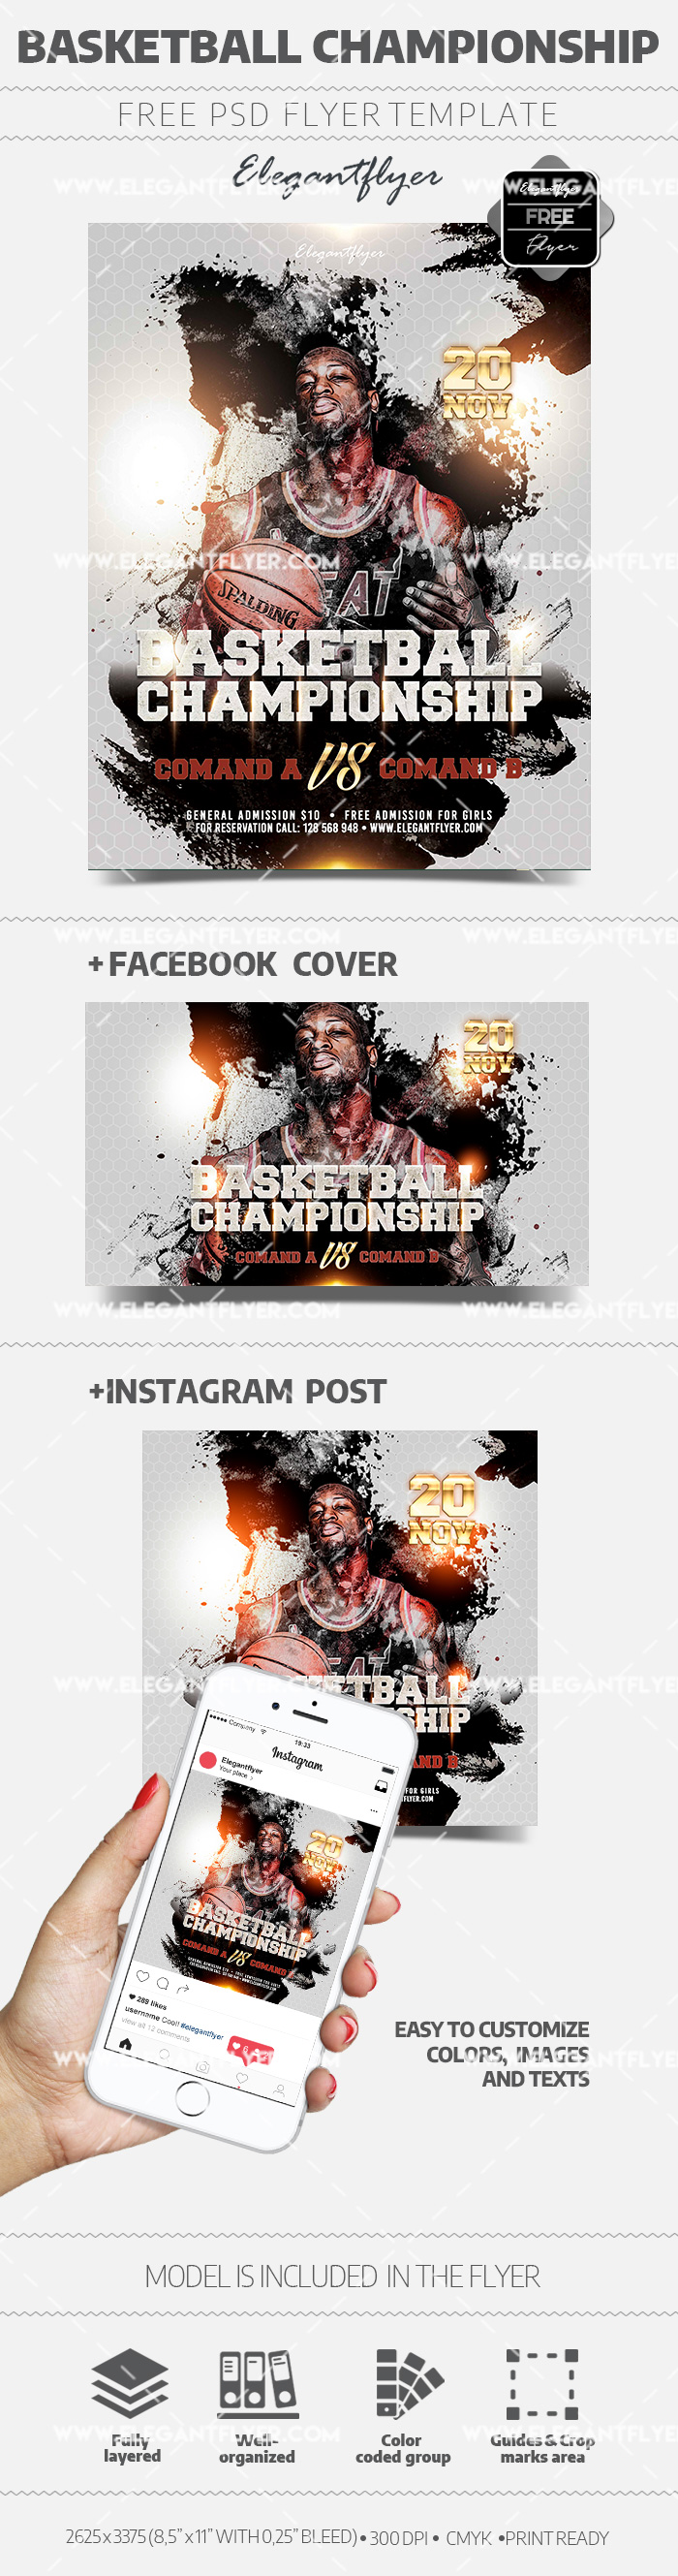 Basketball Championship – Free PSD Flyer Template + Facebook Cover + Instagram Post